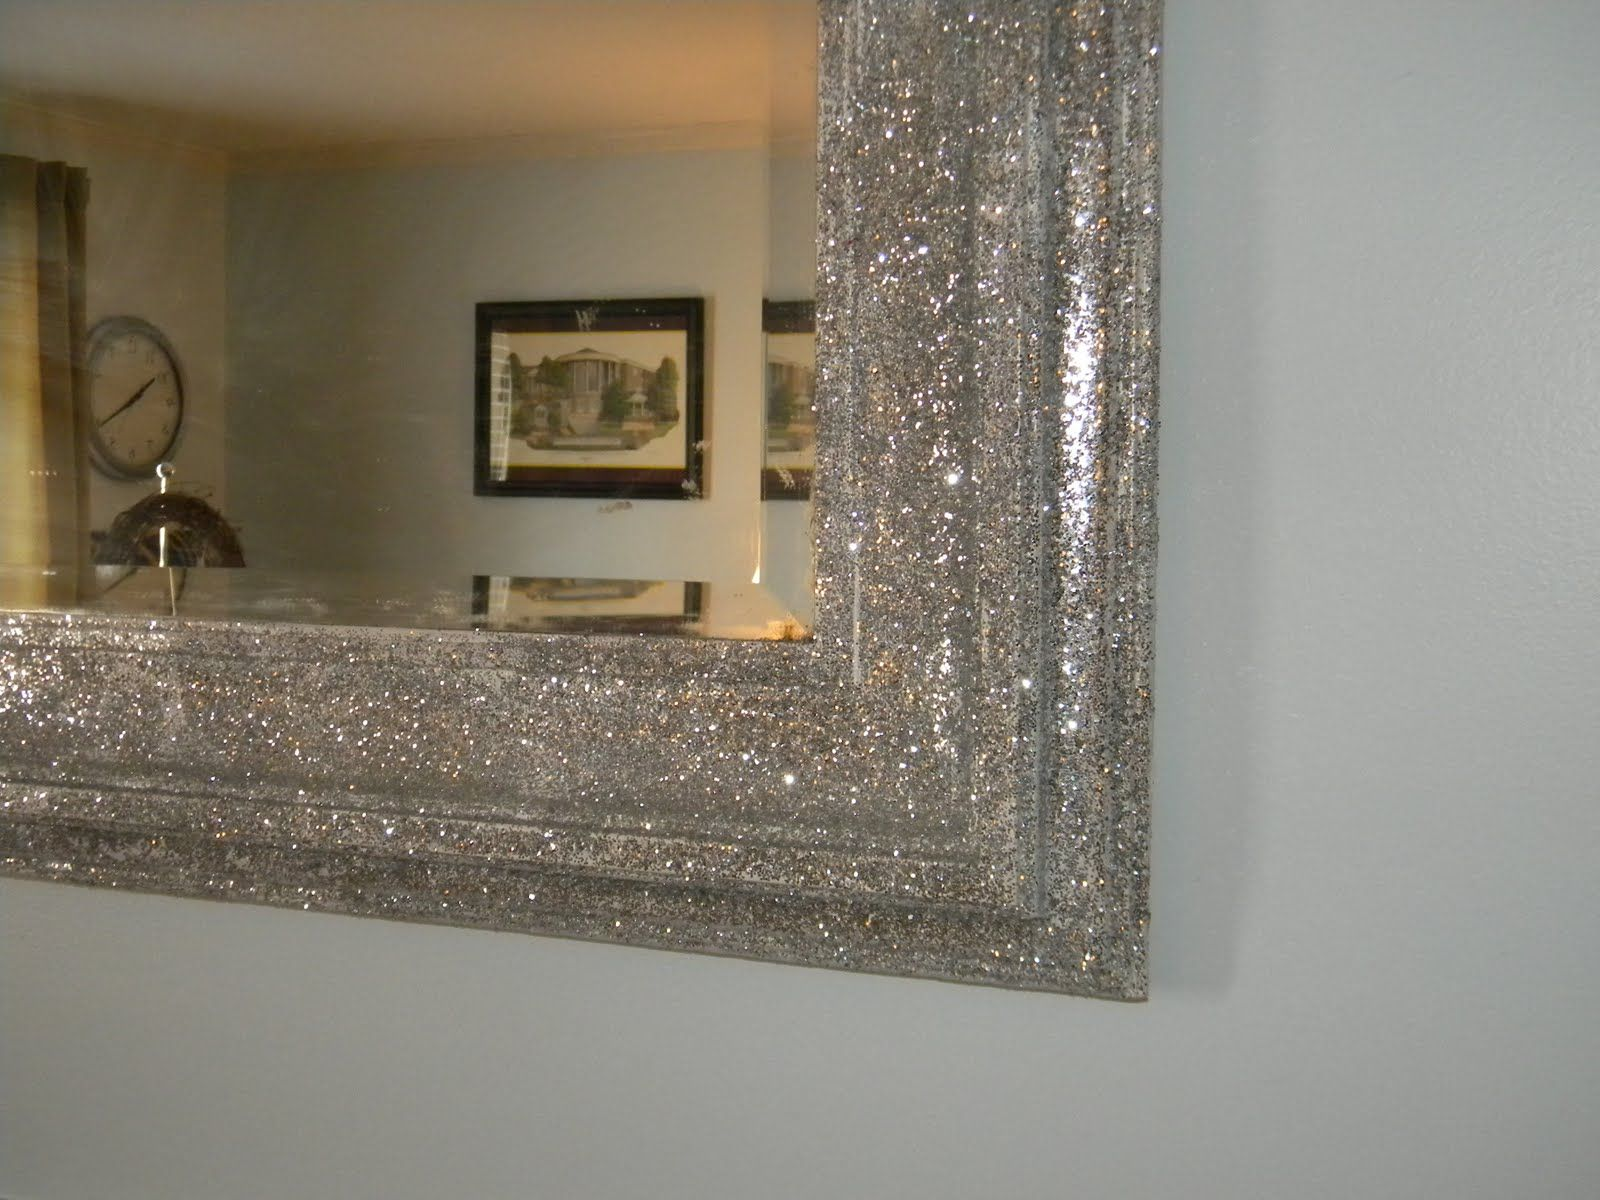 A Few Years Ago My Dad Saw A Large Framed Mirror On The